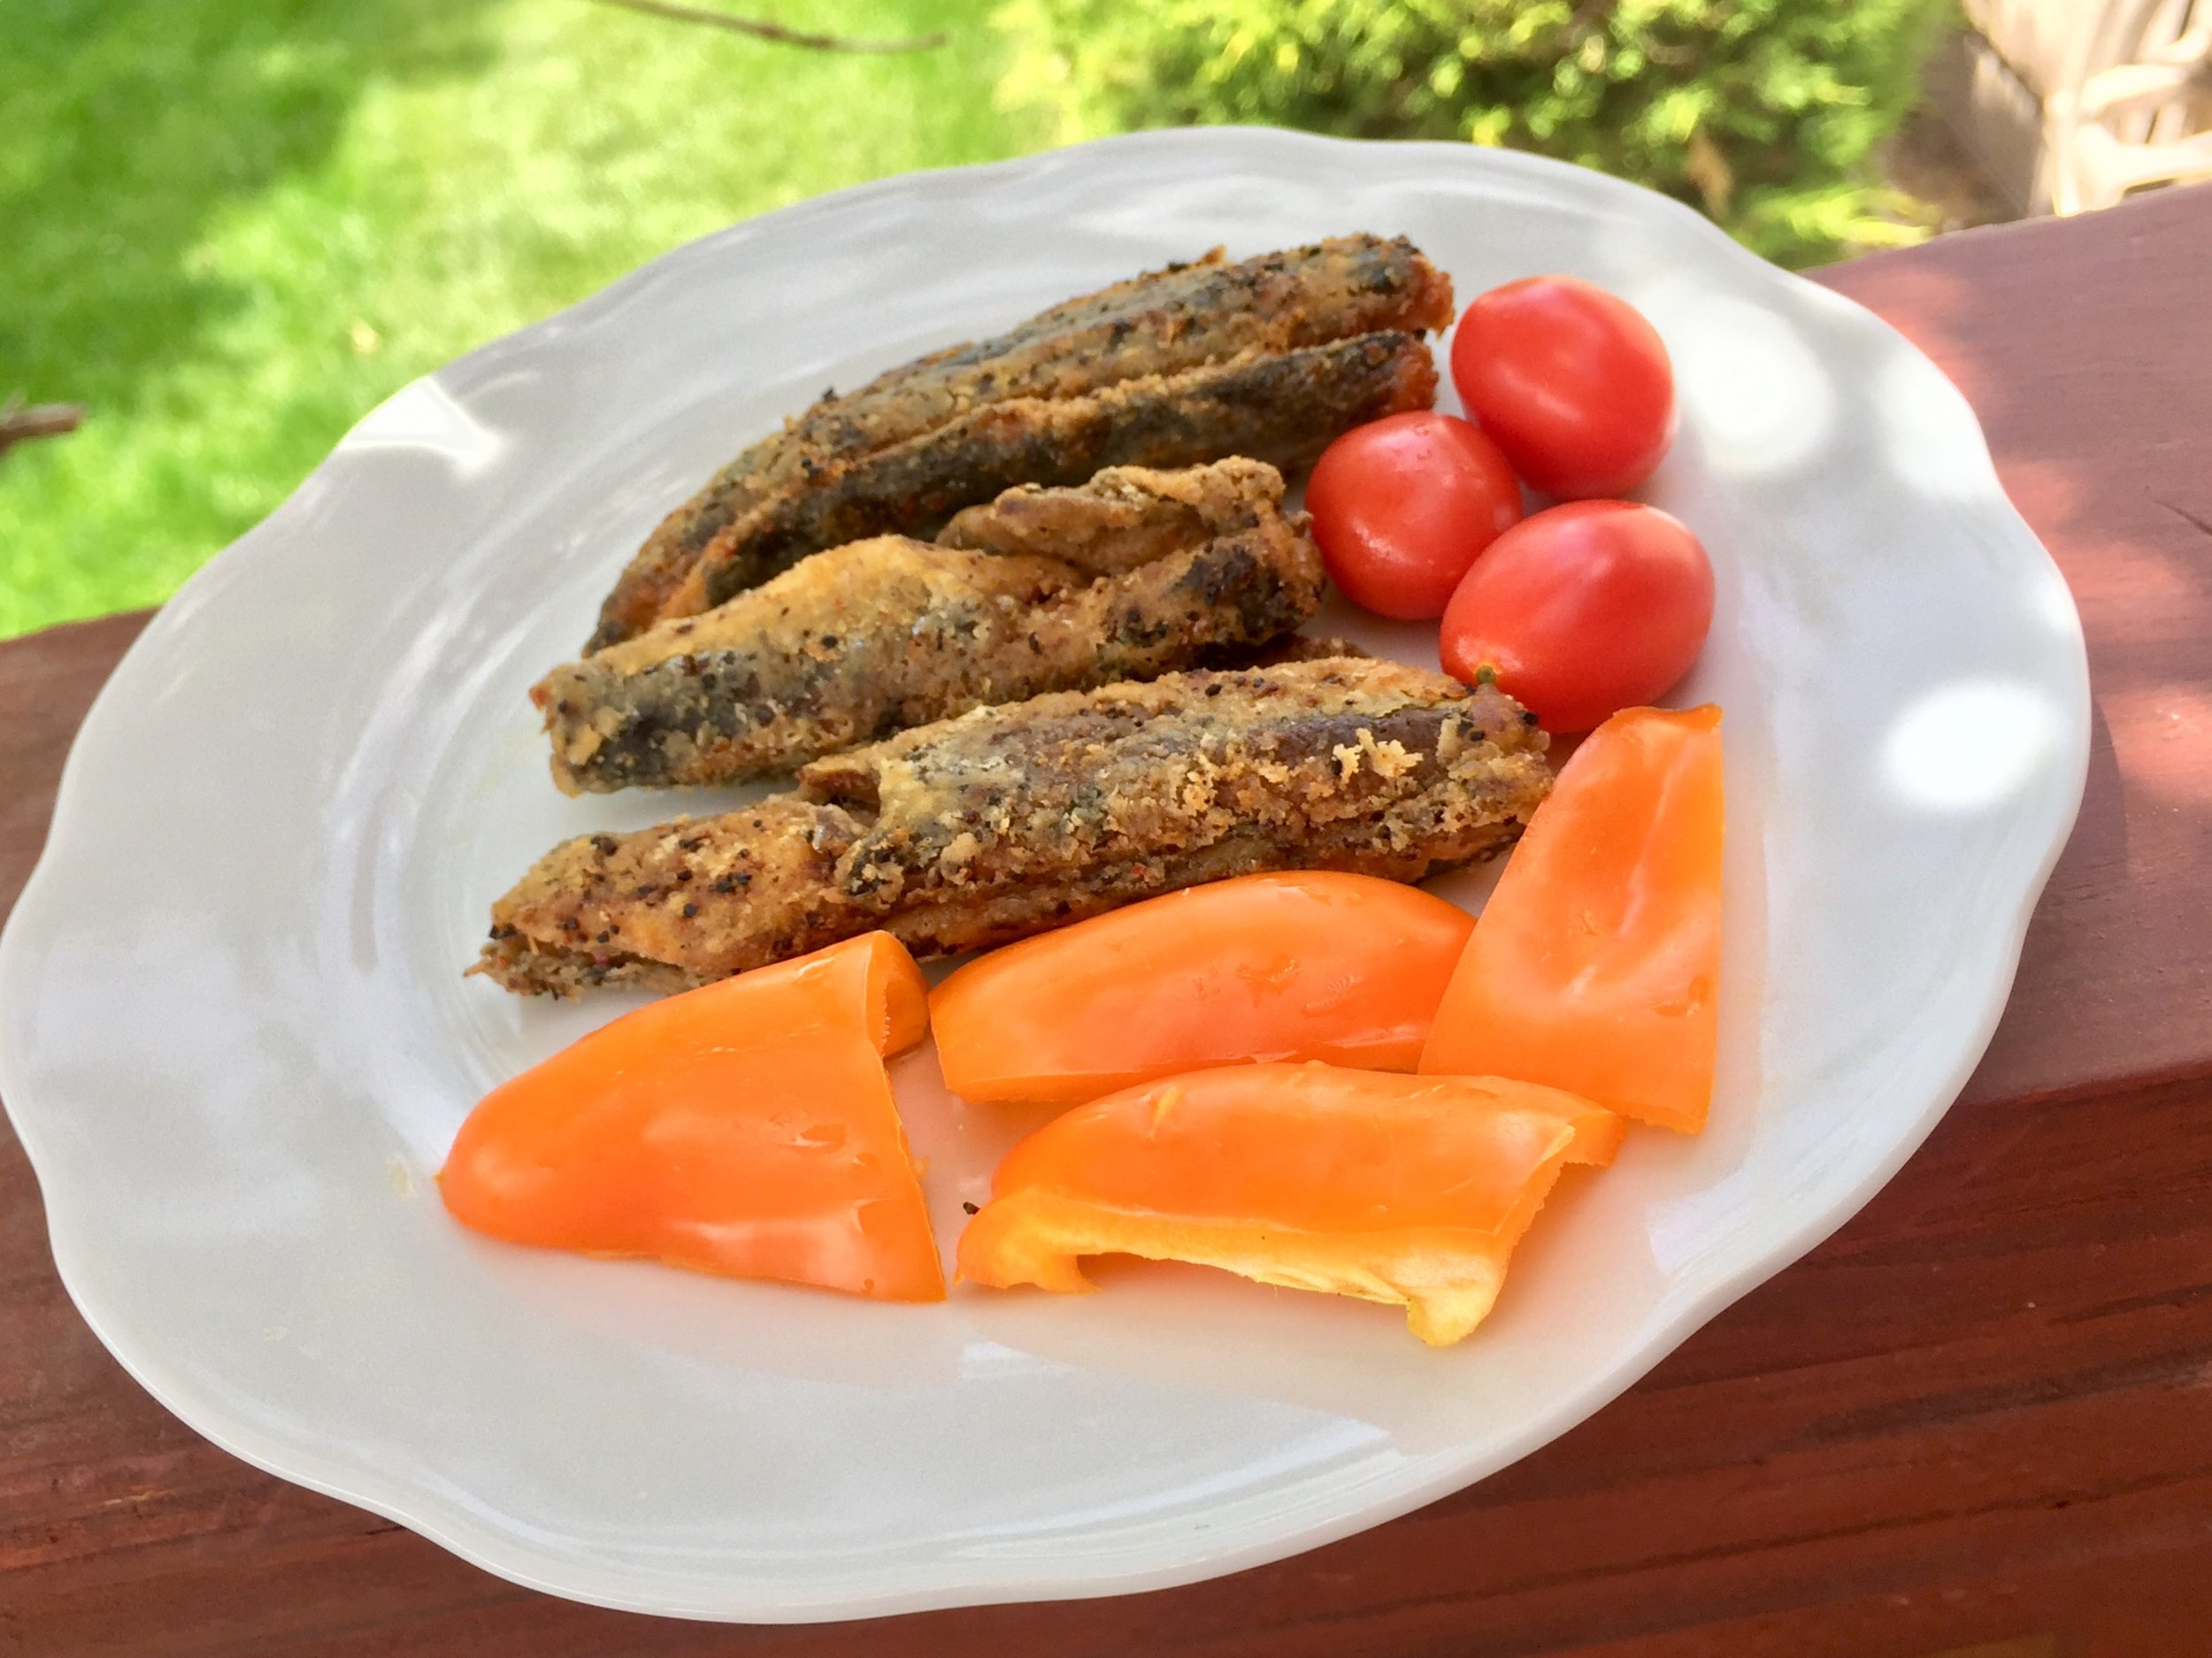 Paired with some veggies, this makes a nice crispy snack (The sardines are 20g protein, 8g fat, 1g carbs)